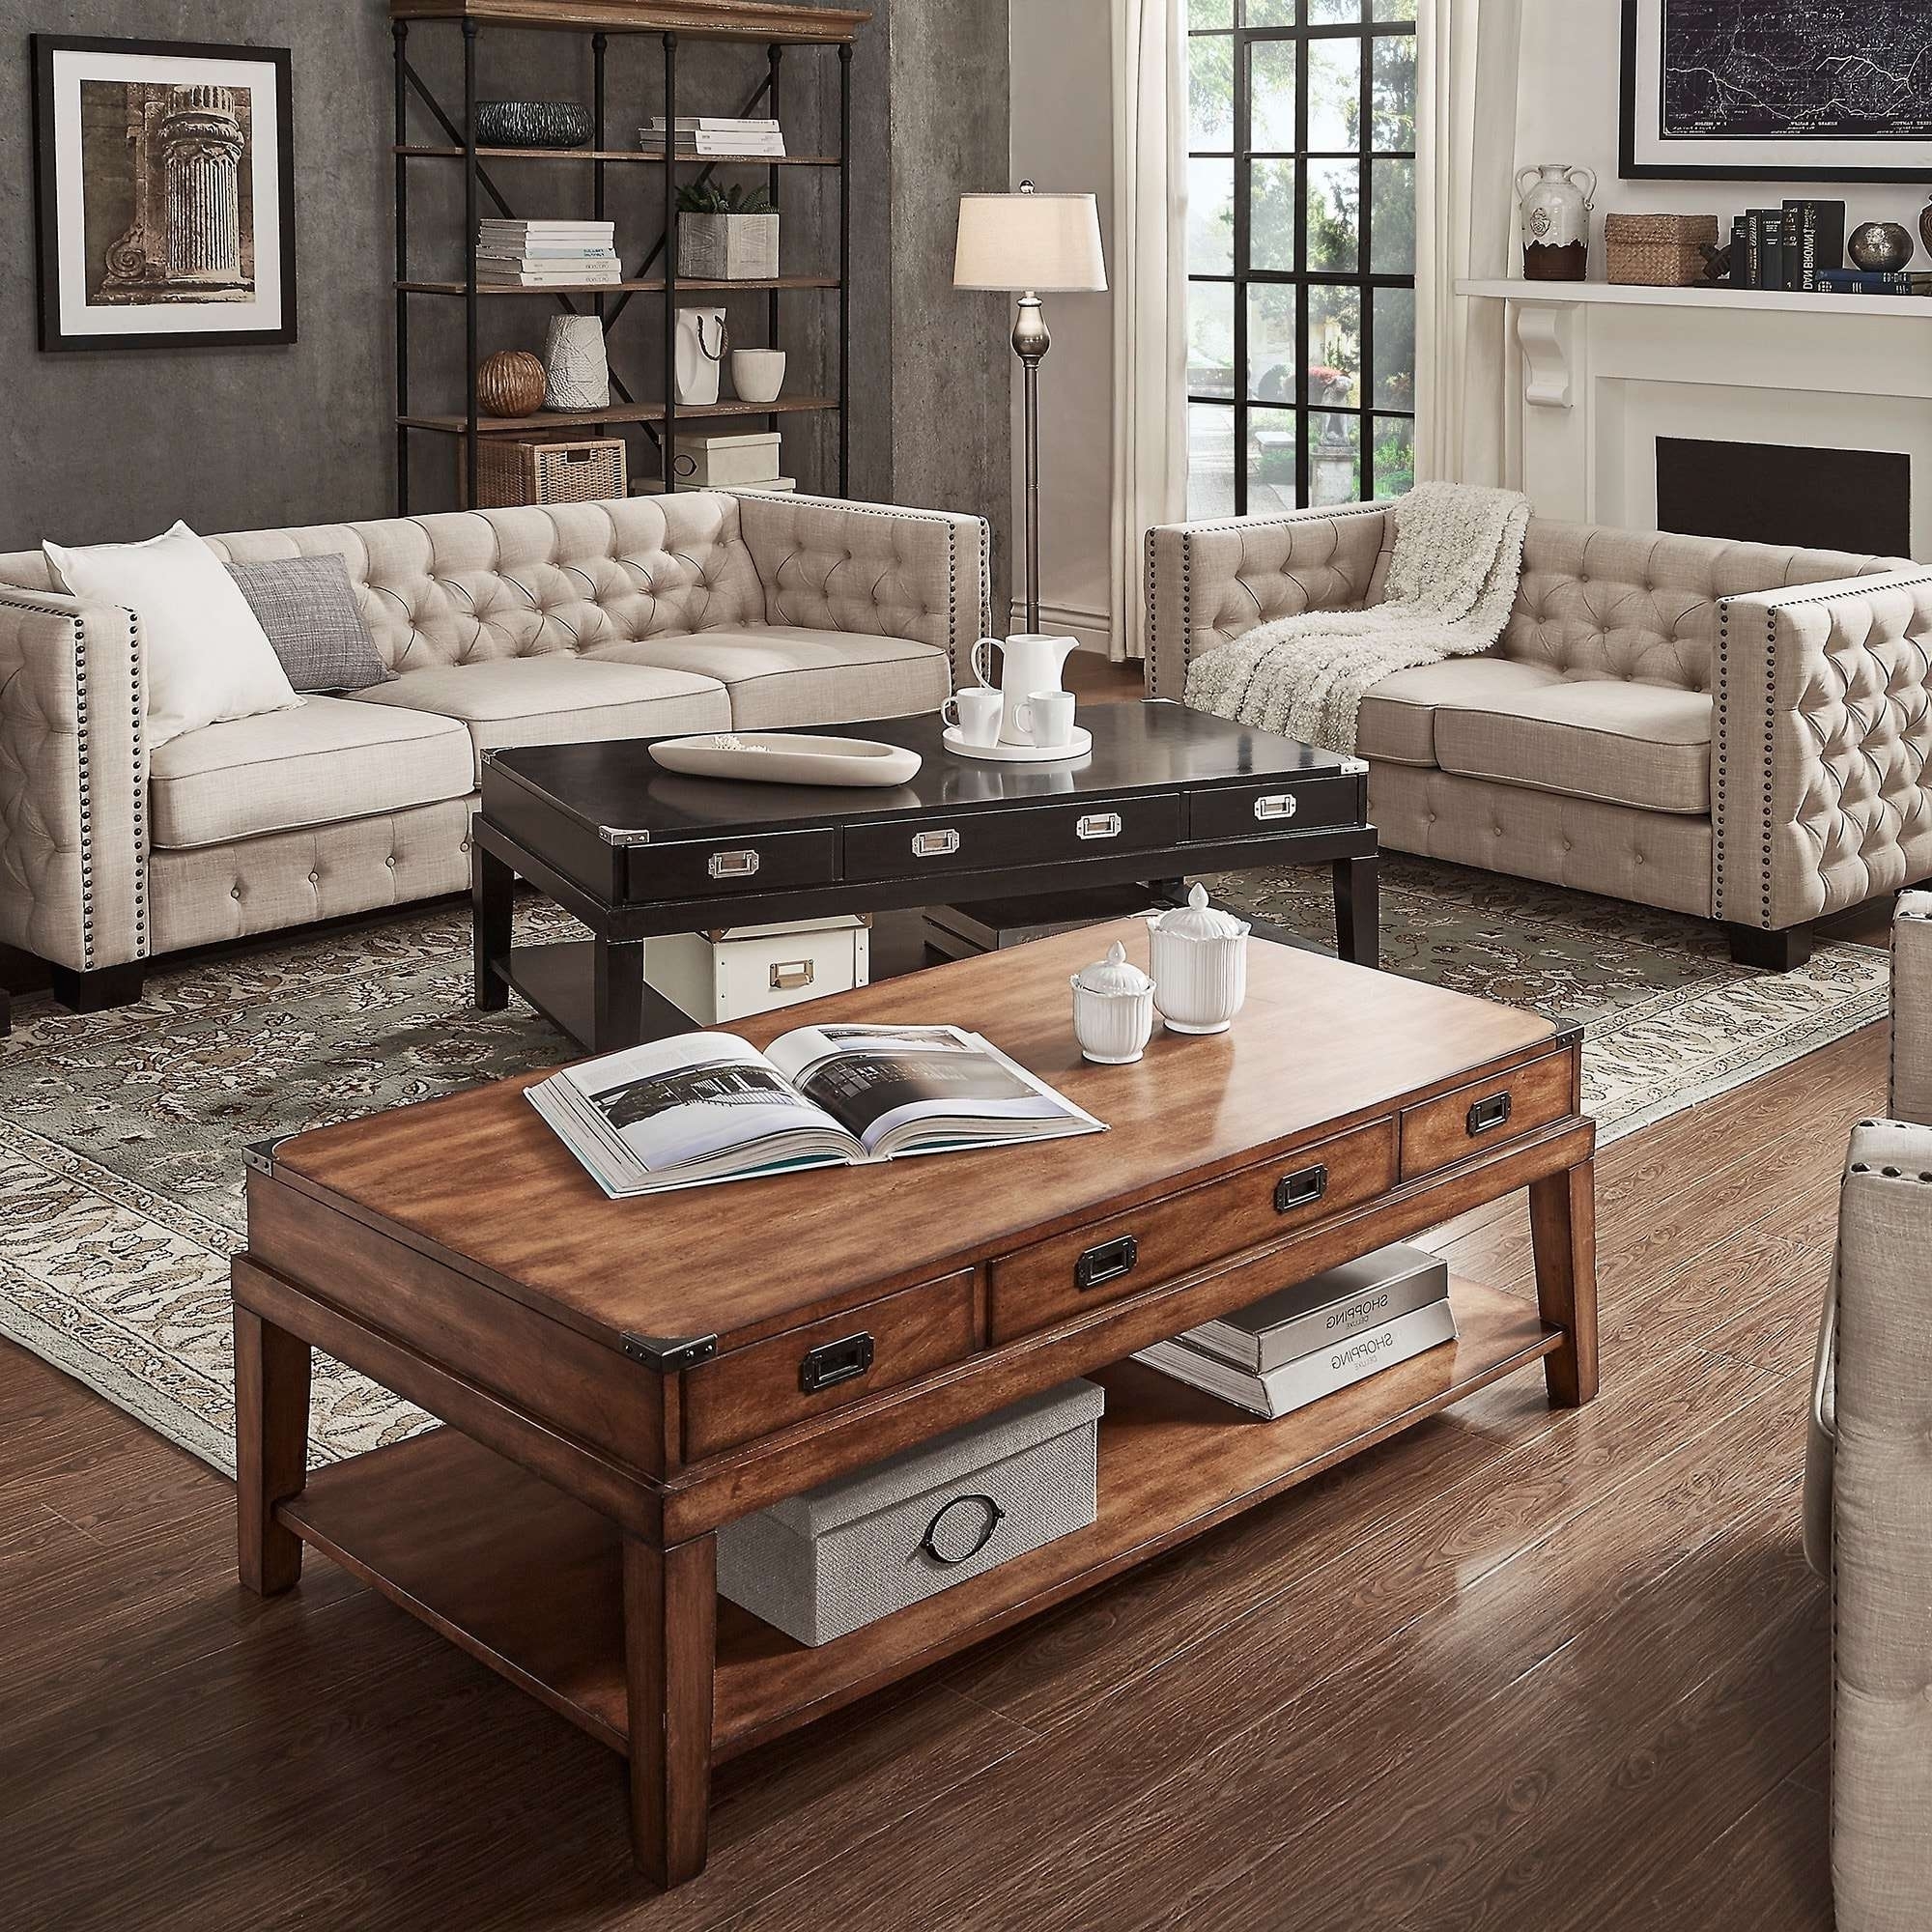 Most Recent Campaign Coffee Tables Intended For Lonny Wood Storage Accent Campaign Coffee Tableinspire Q (View 11 of 20)